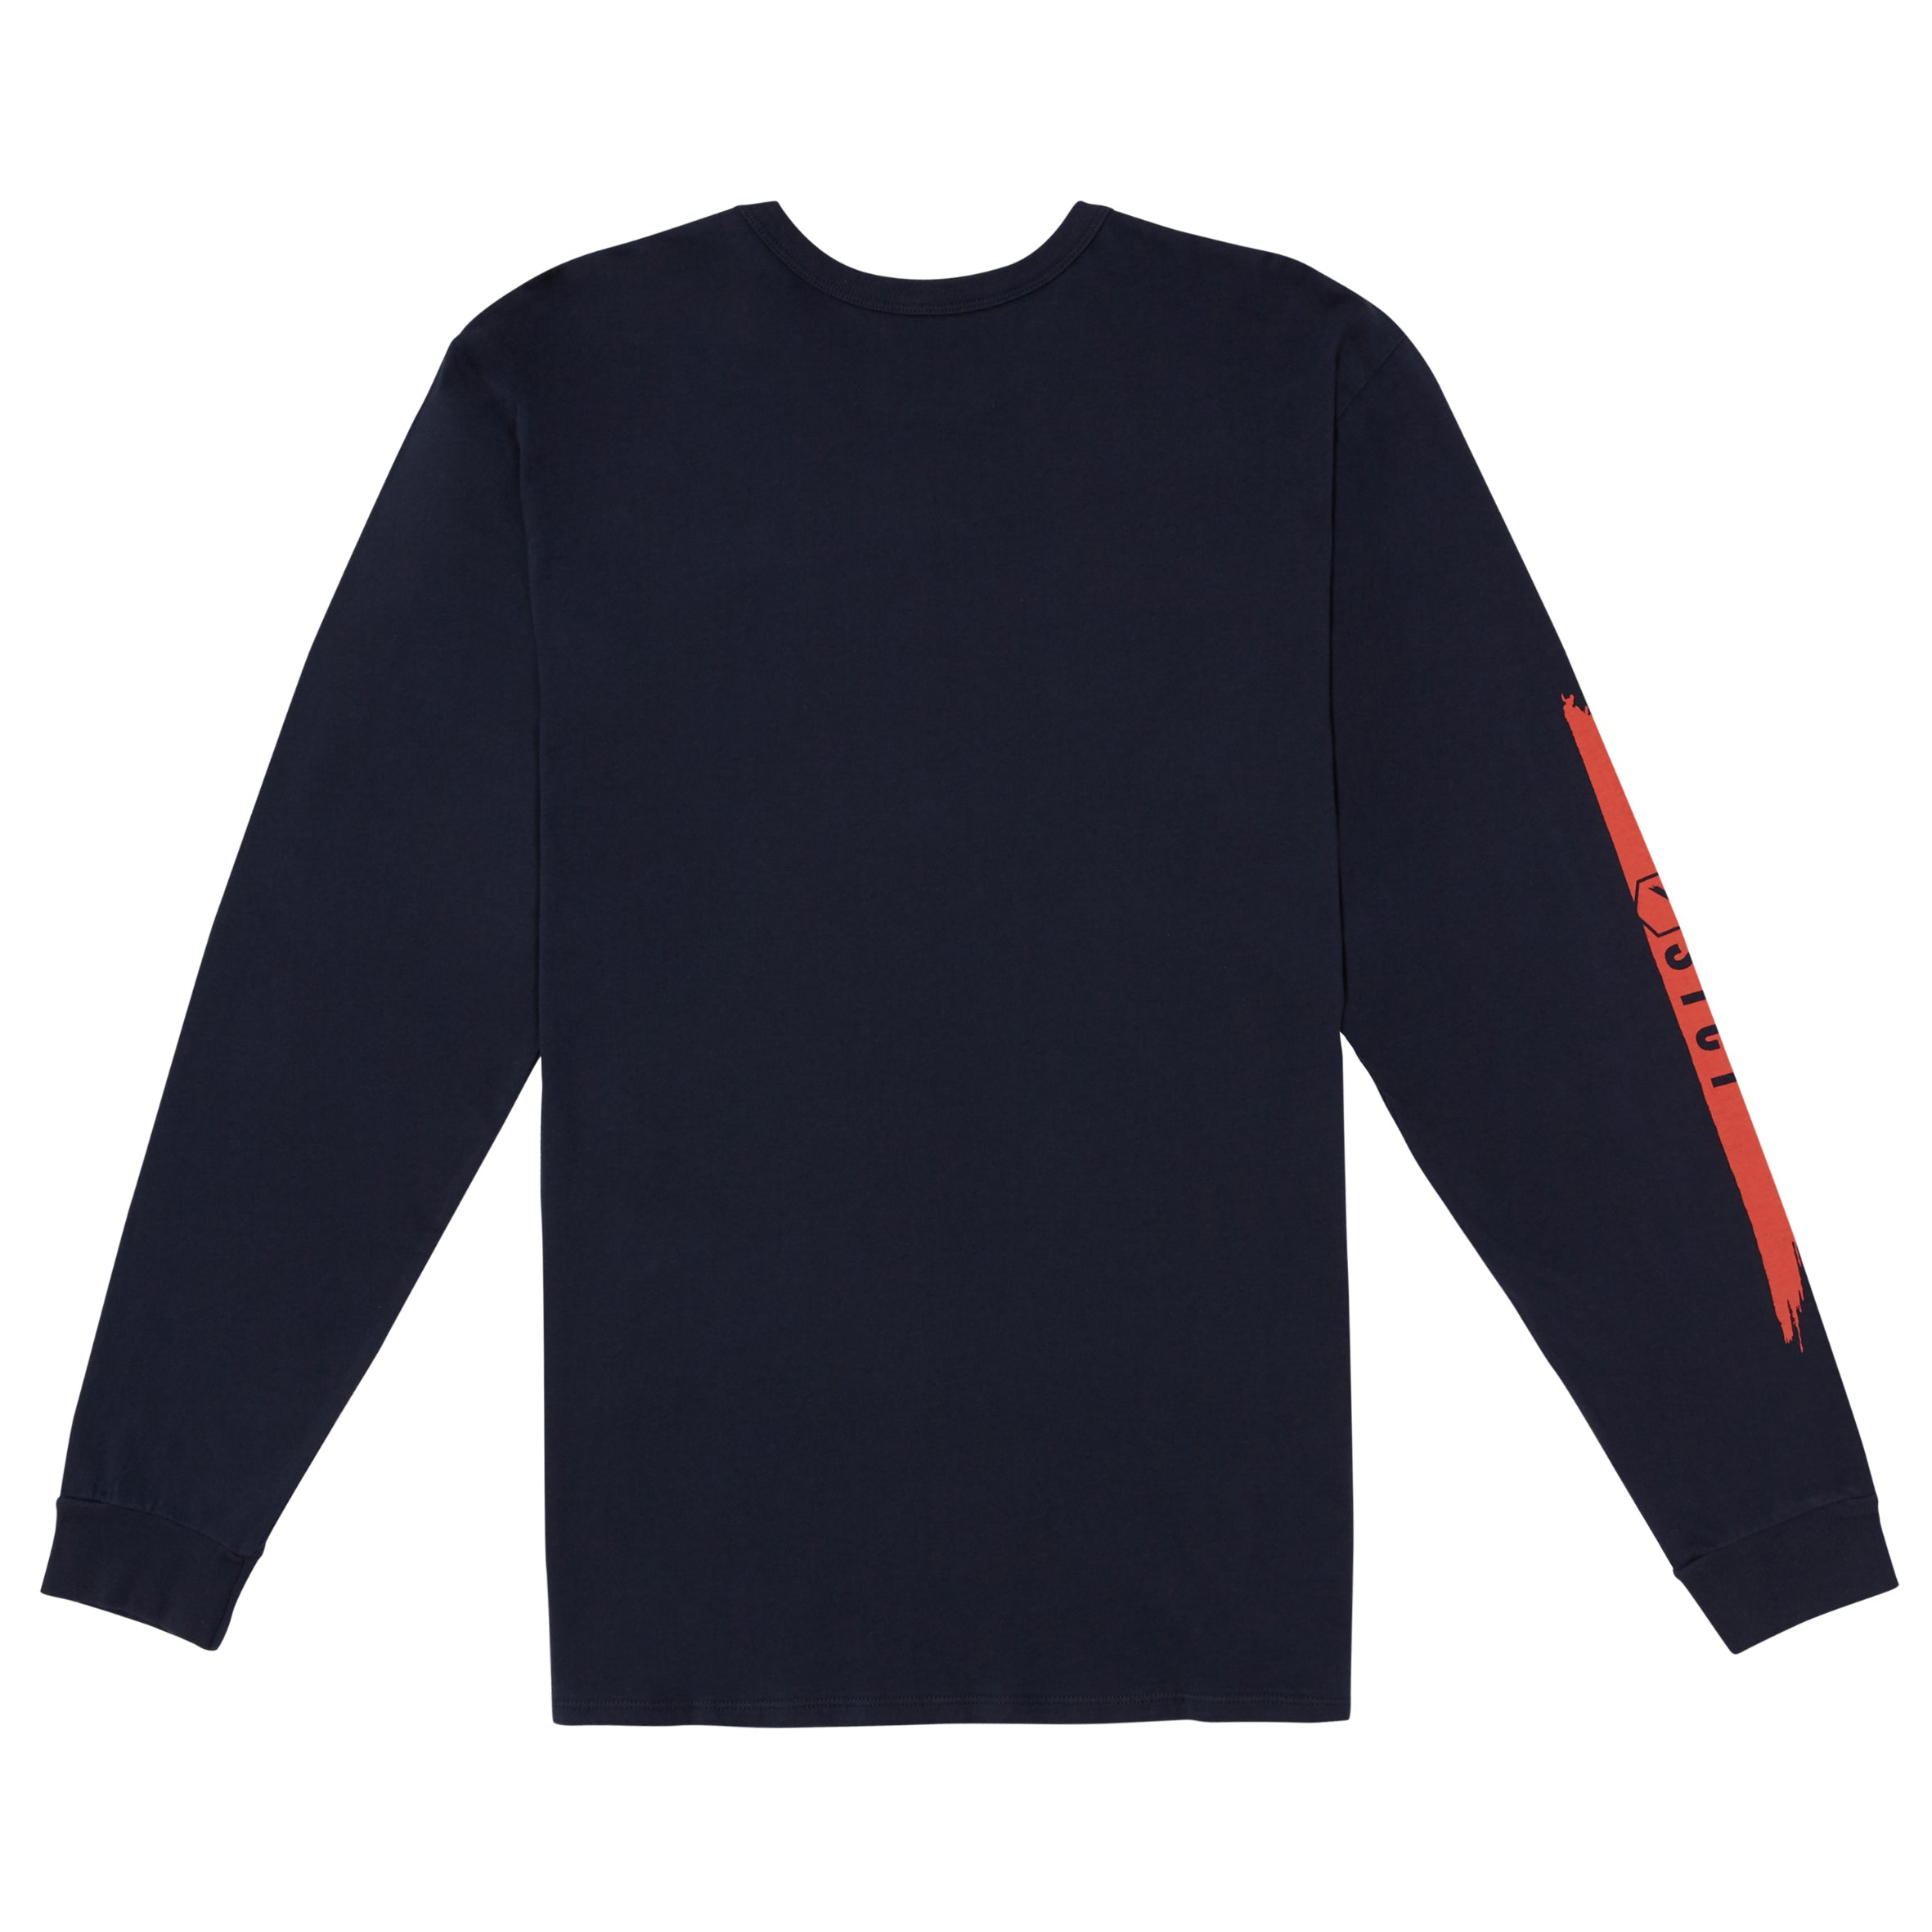 SLASH 2 L/S TEE - NAVY